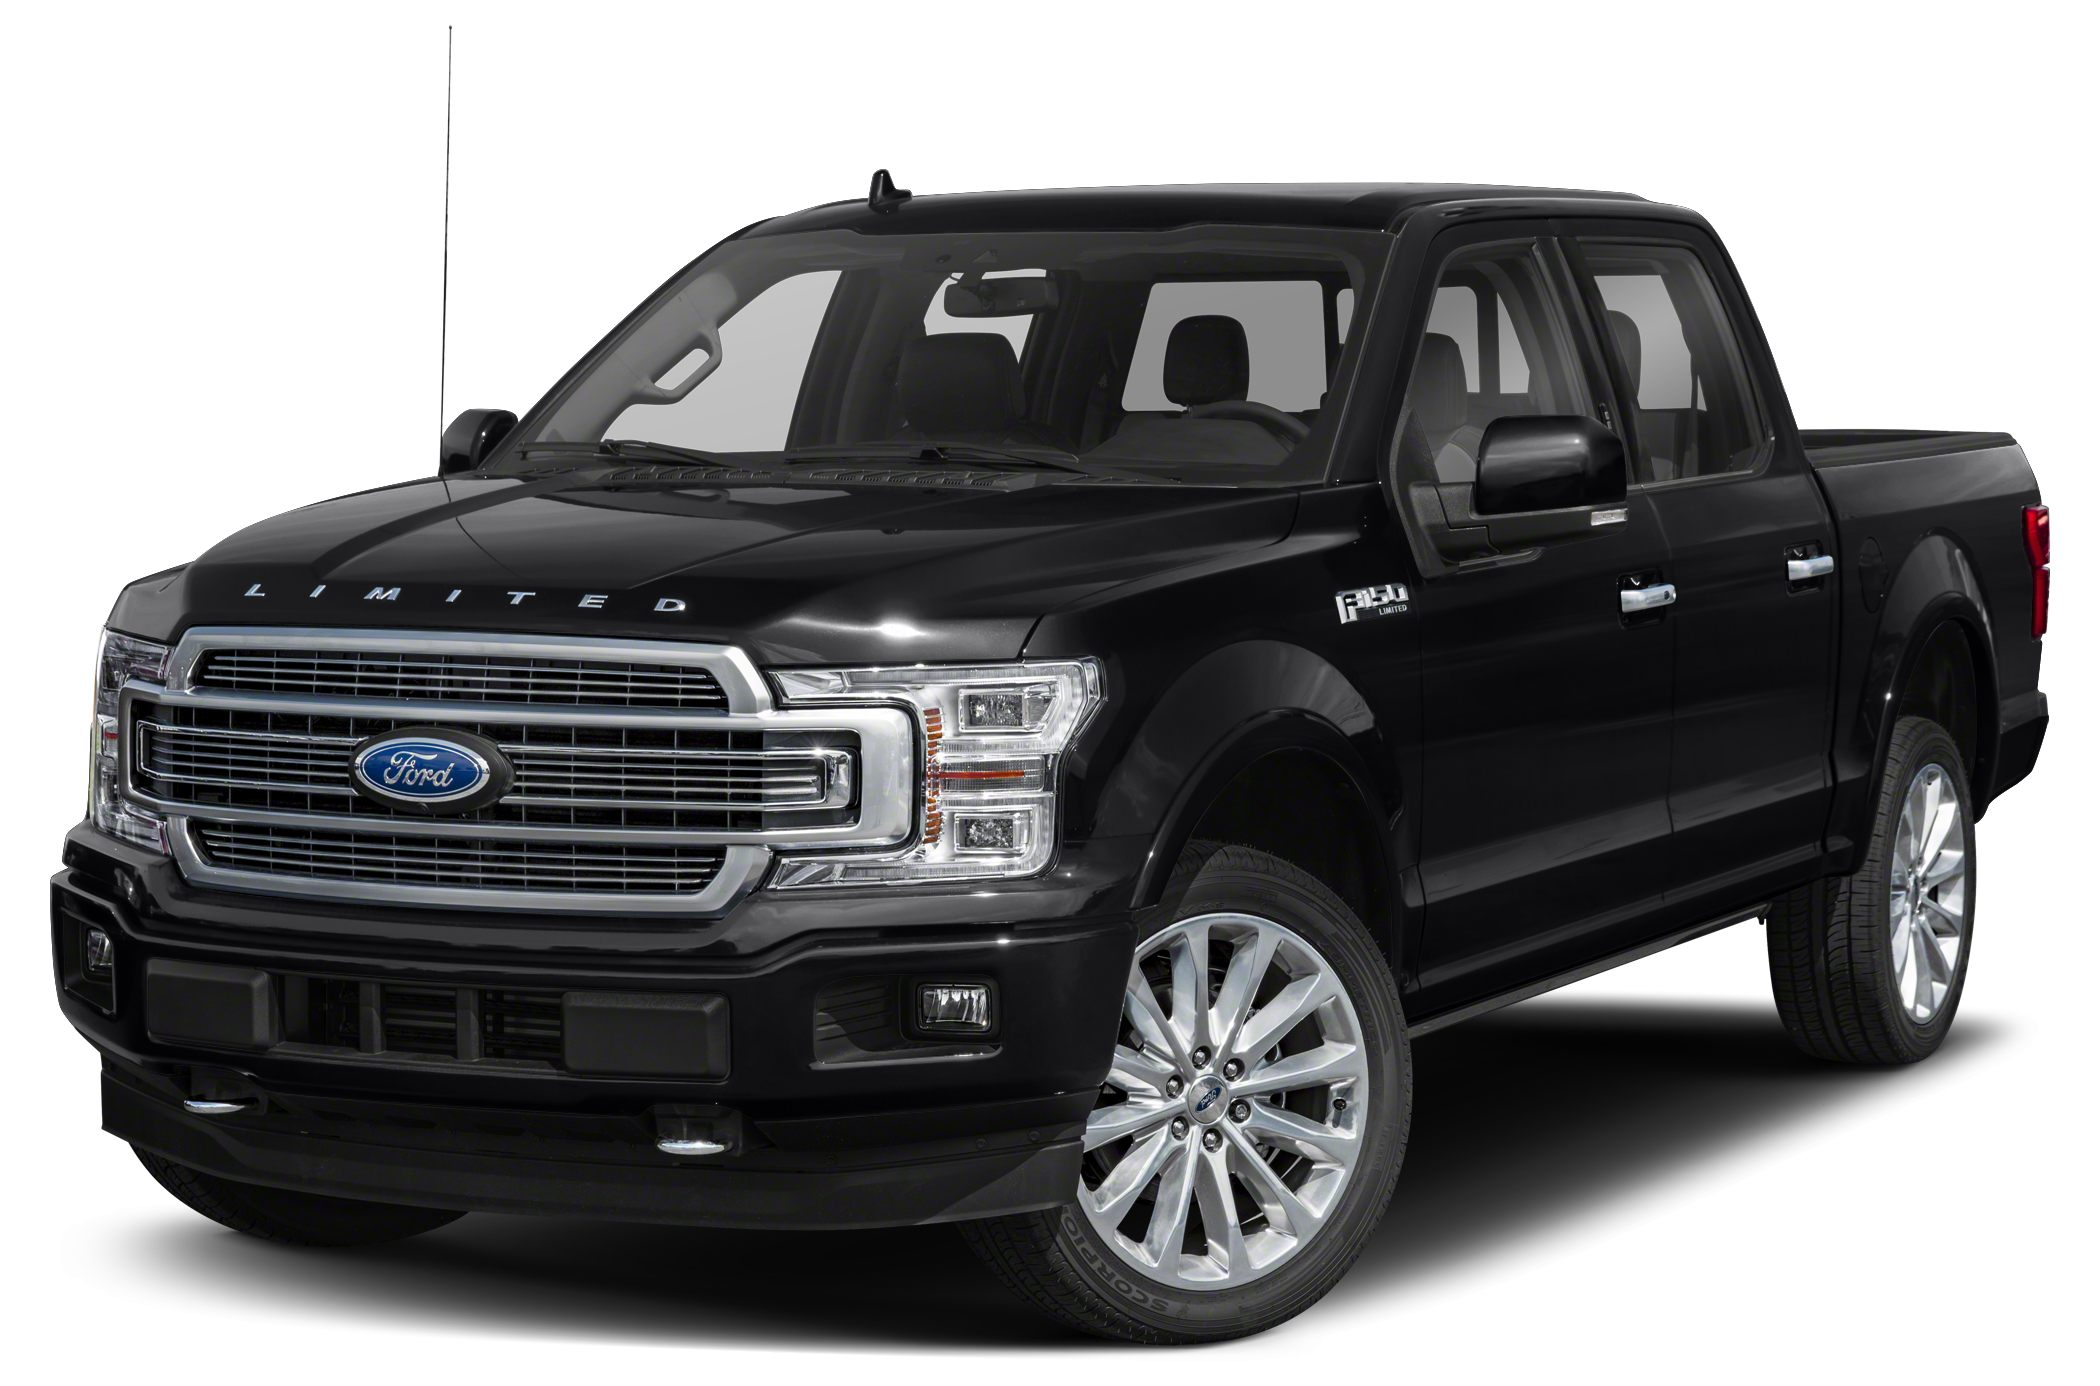 2020 Ford F-150 Limited 4x2 SuperCrew Cab Styleside 5.5 ft. box 145 in. WB